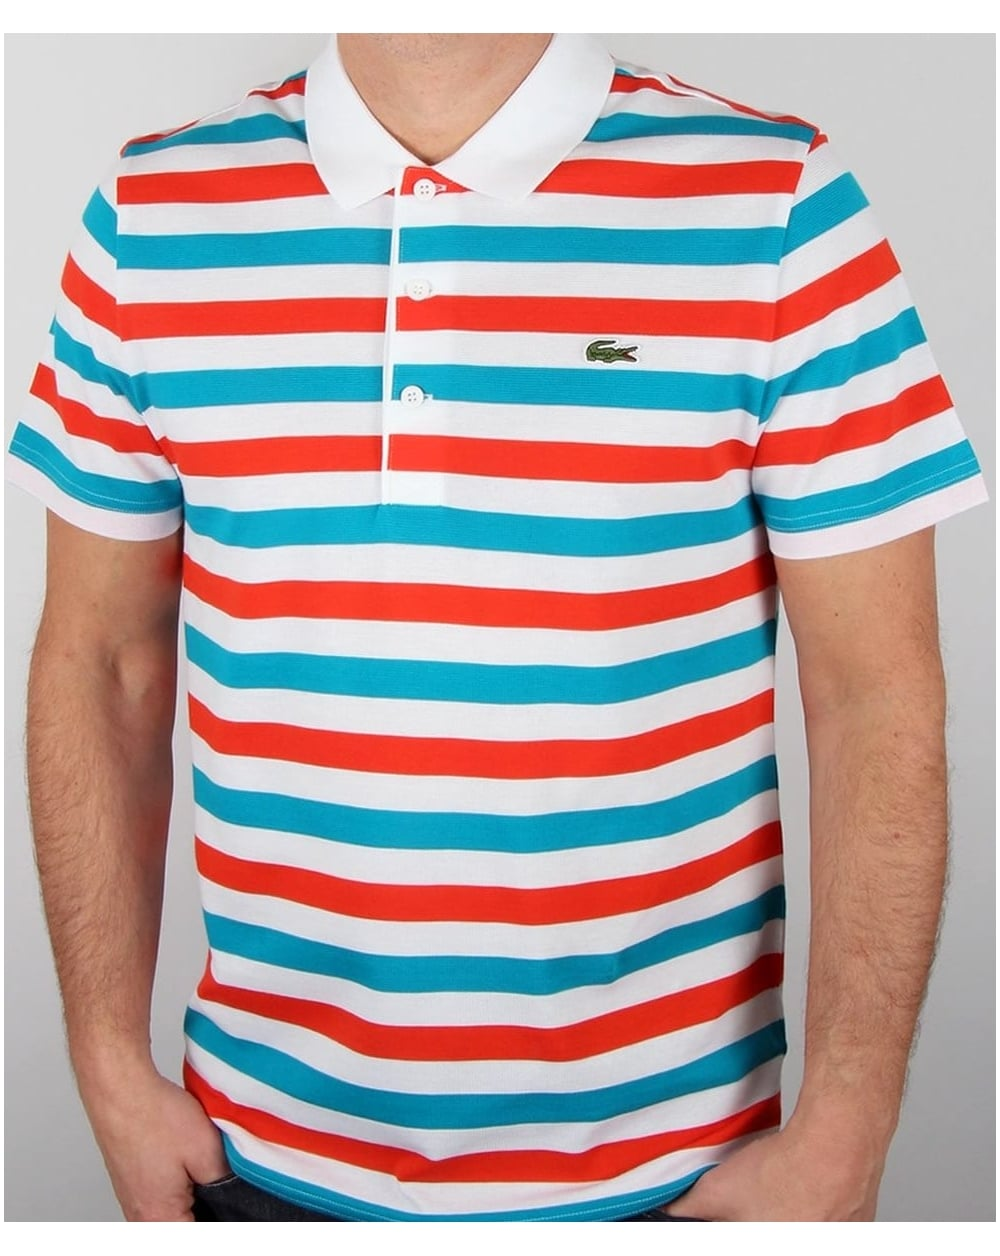 Lacoste fine stripe polo shirt white red blue men 39 s top for Red blue striped shirt